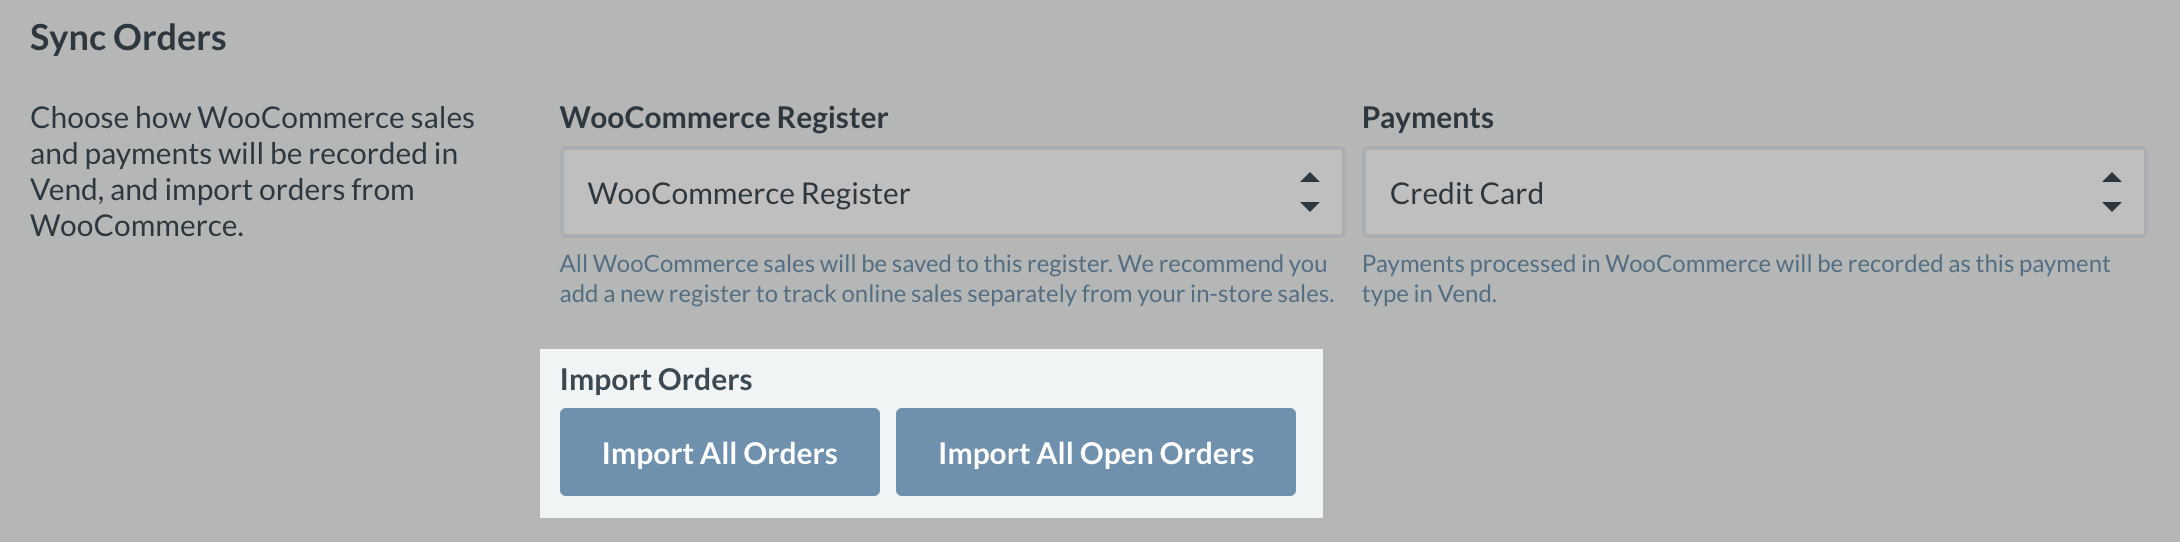 The WooCommerce Integration - How does it work, and how do I set it